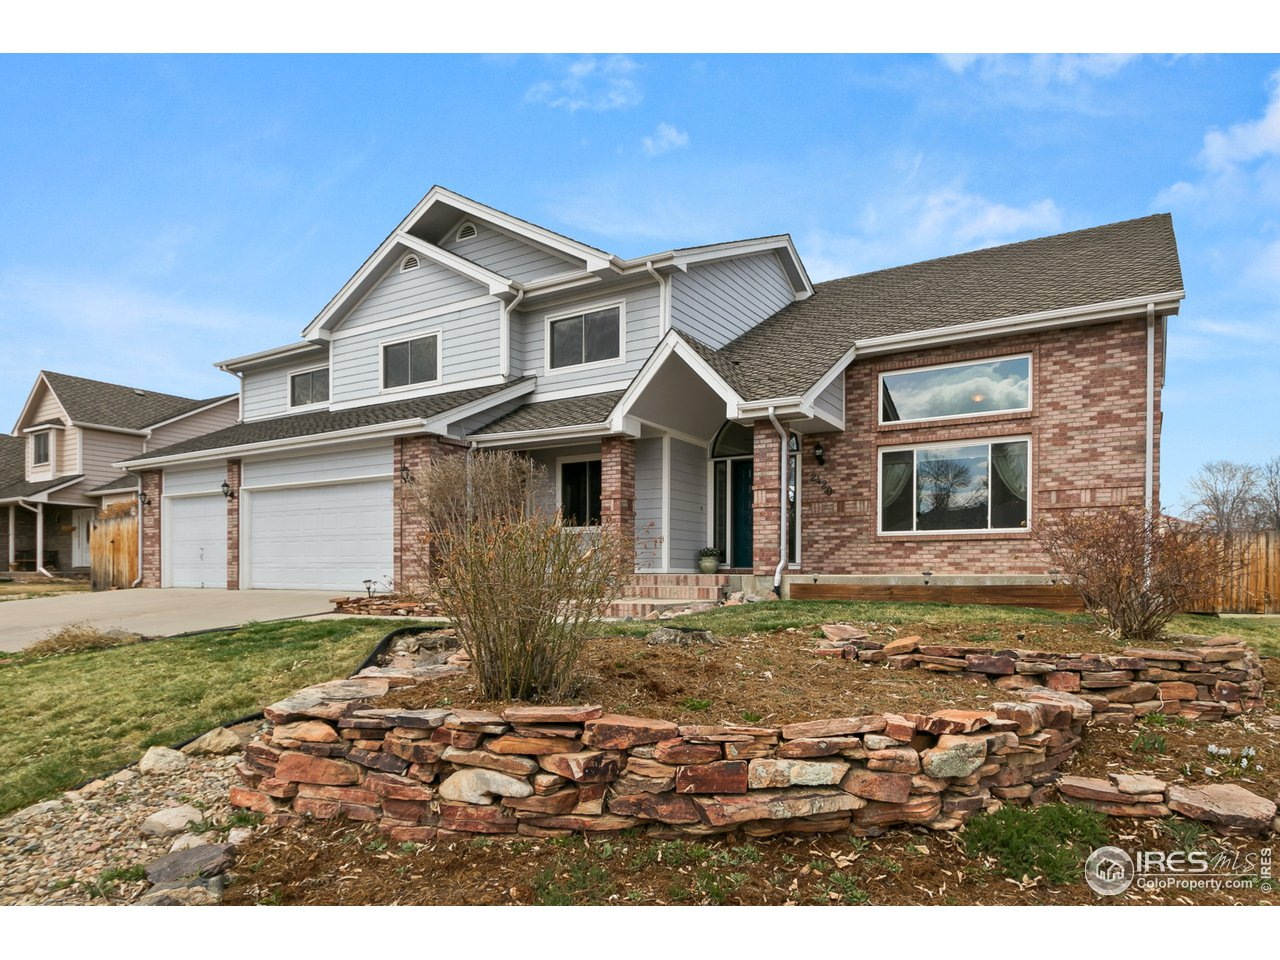 2420 Mapleton Cir, Longmont CO 80503